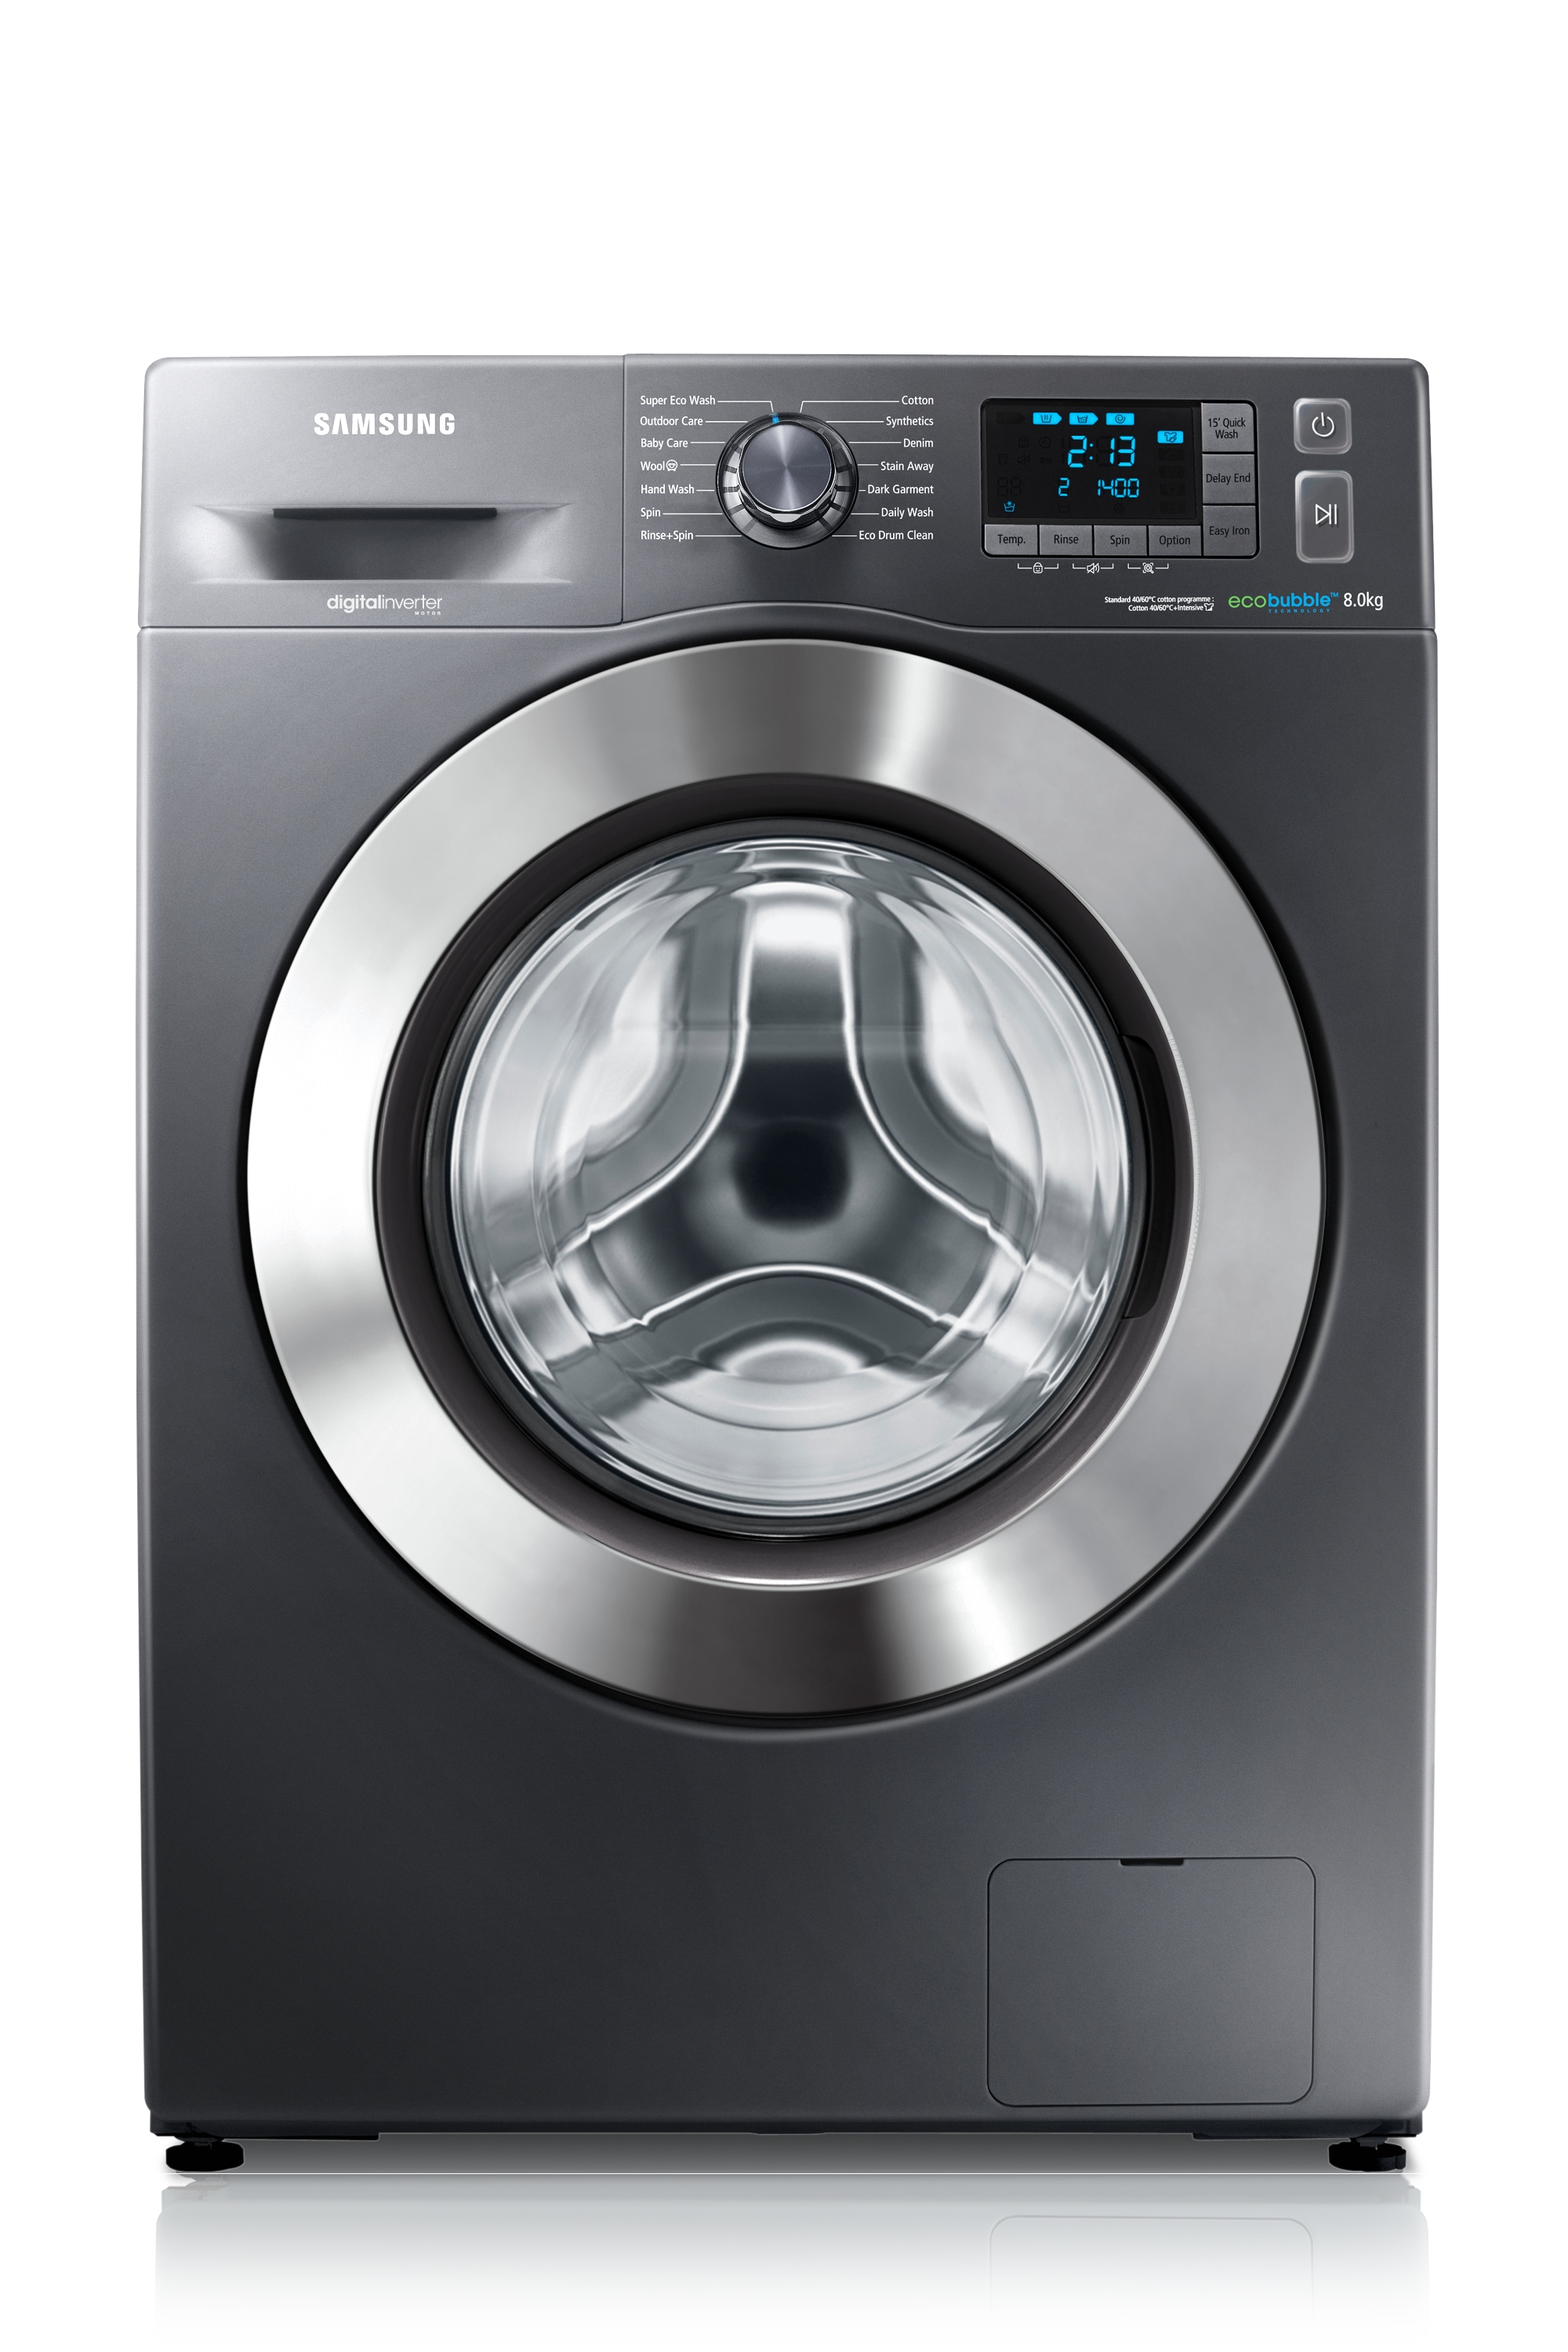 WF80F5E5U4X/EU 8kg 1400rpm ecobubble™ Washing Machine Front2 Grey